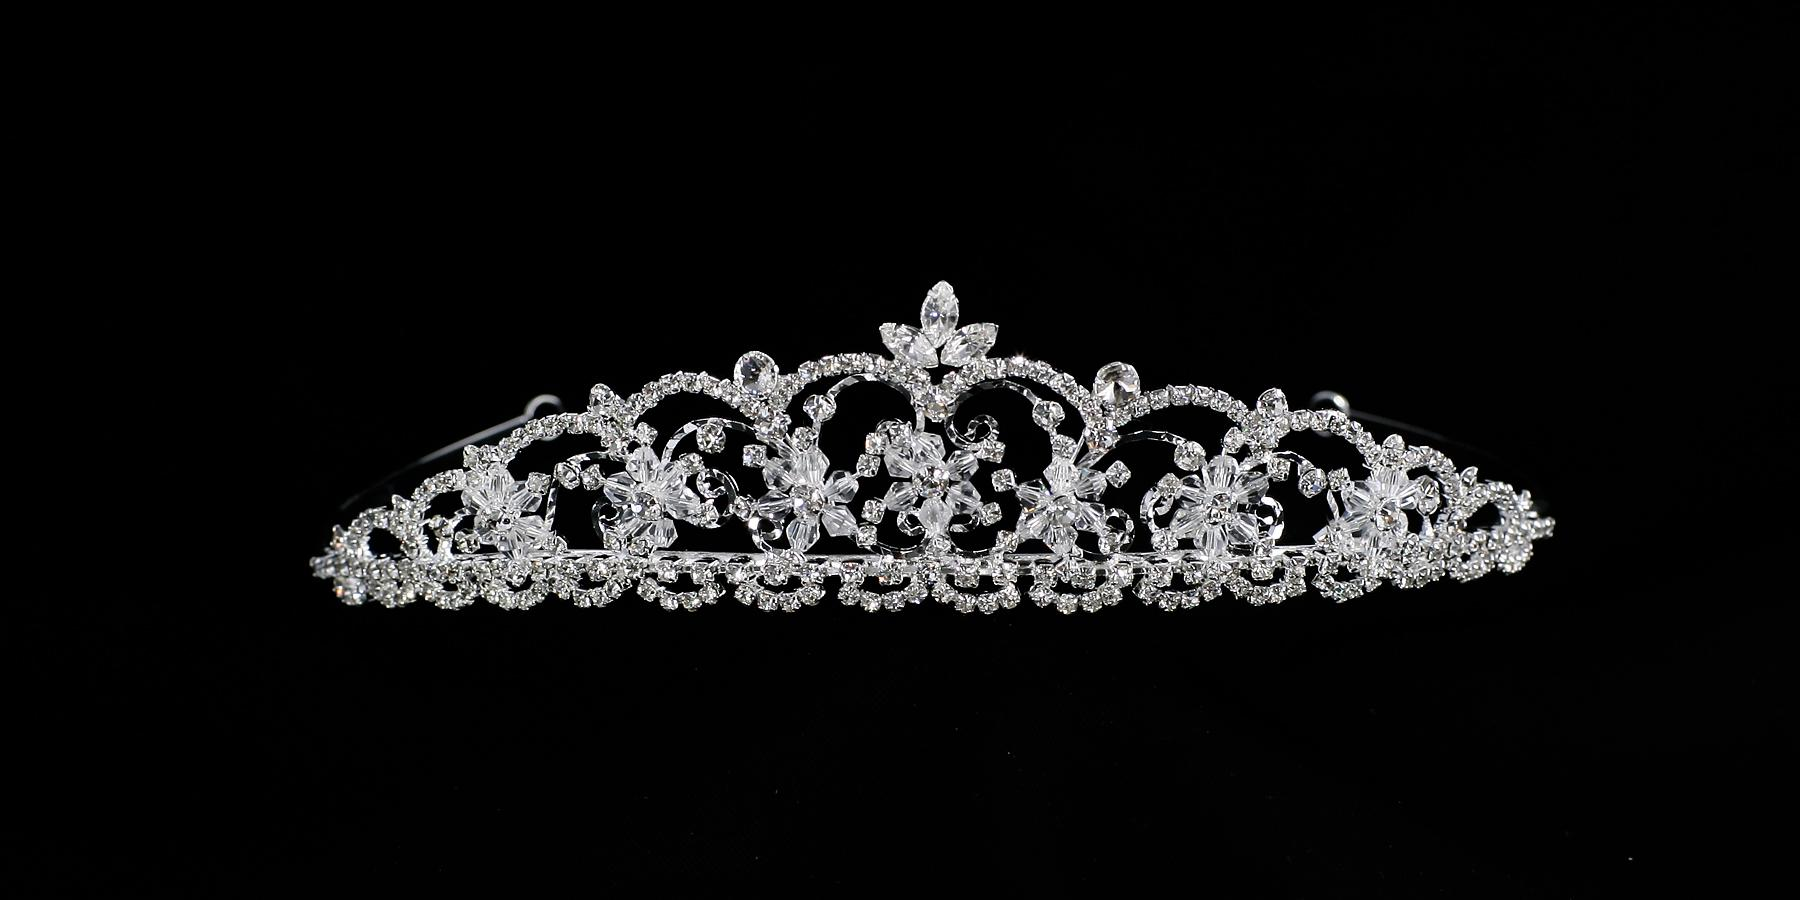 C9318 Swarovski Crystal Headpiece